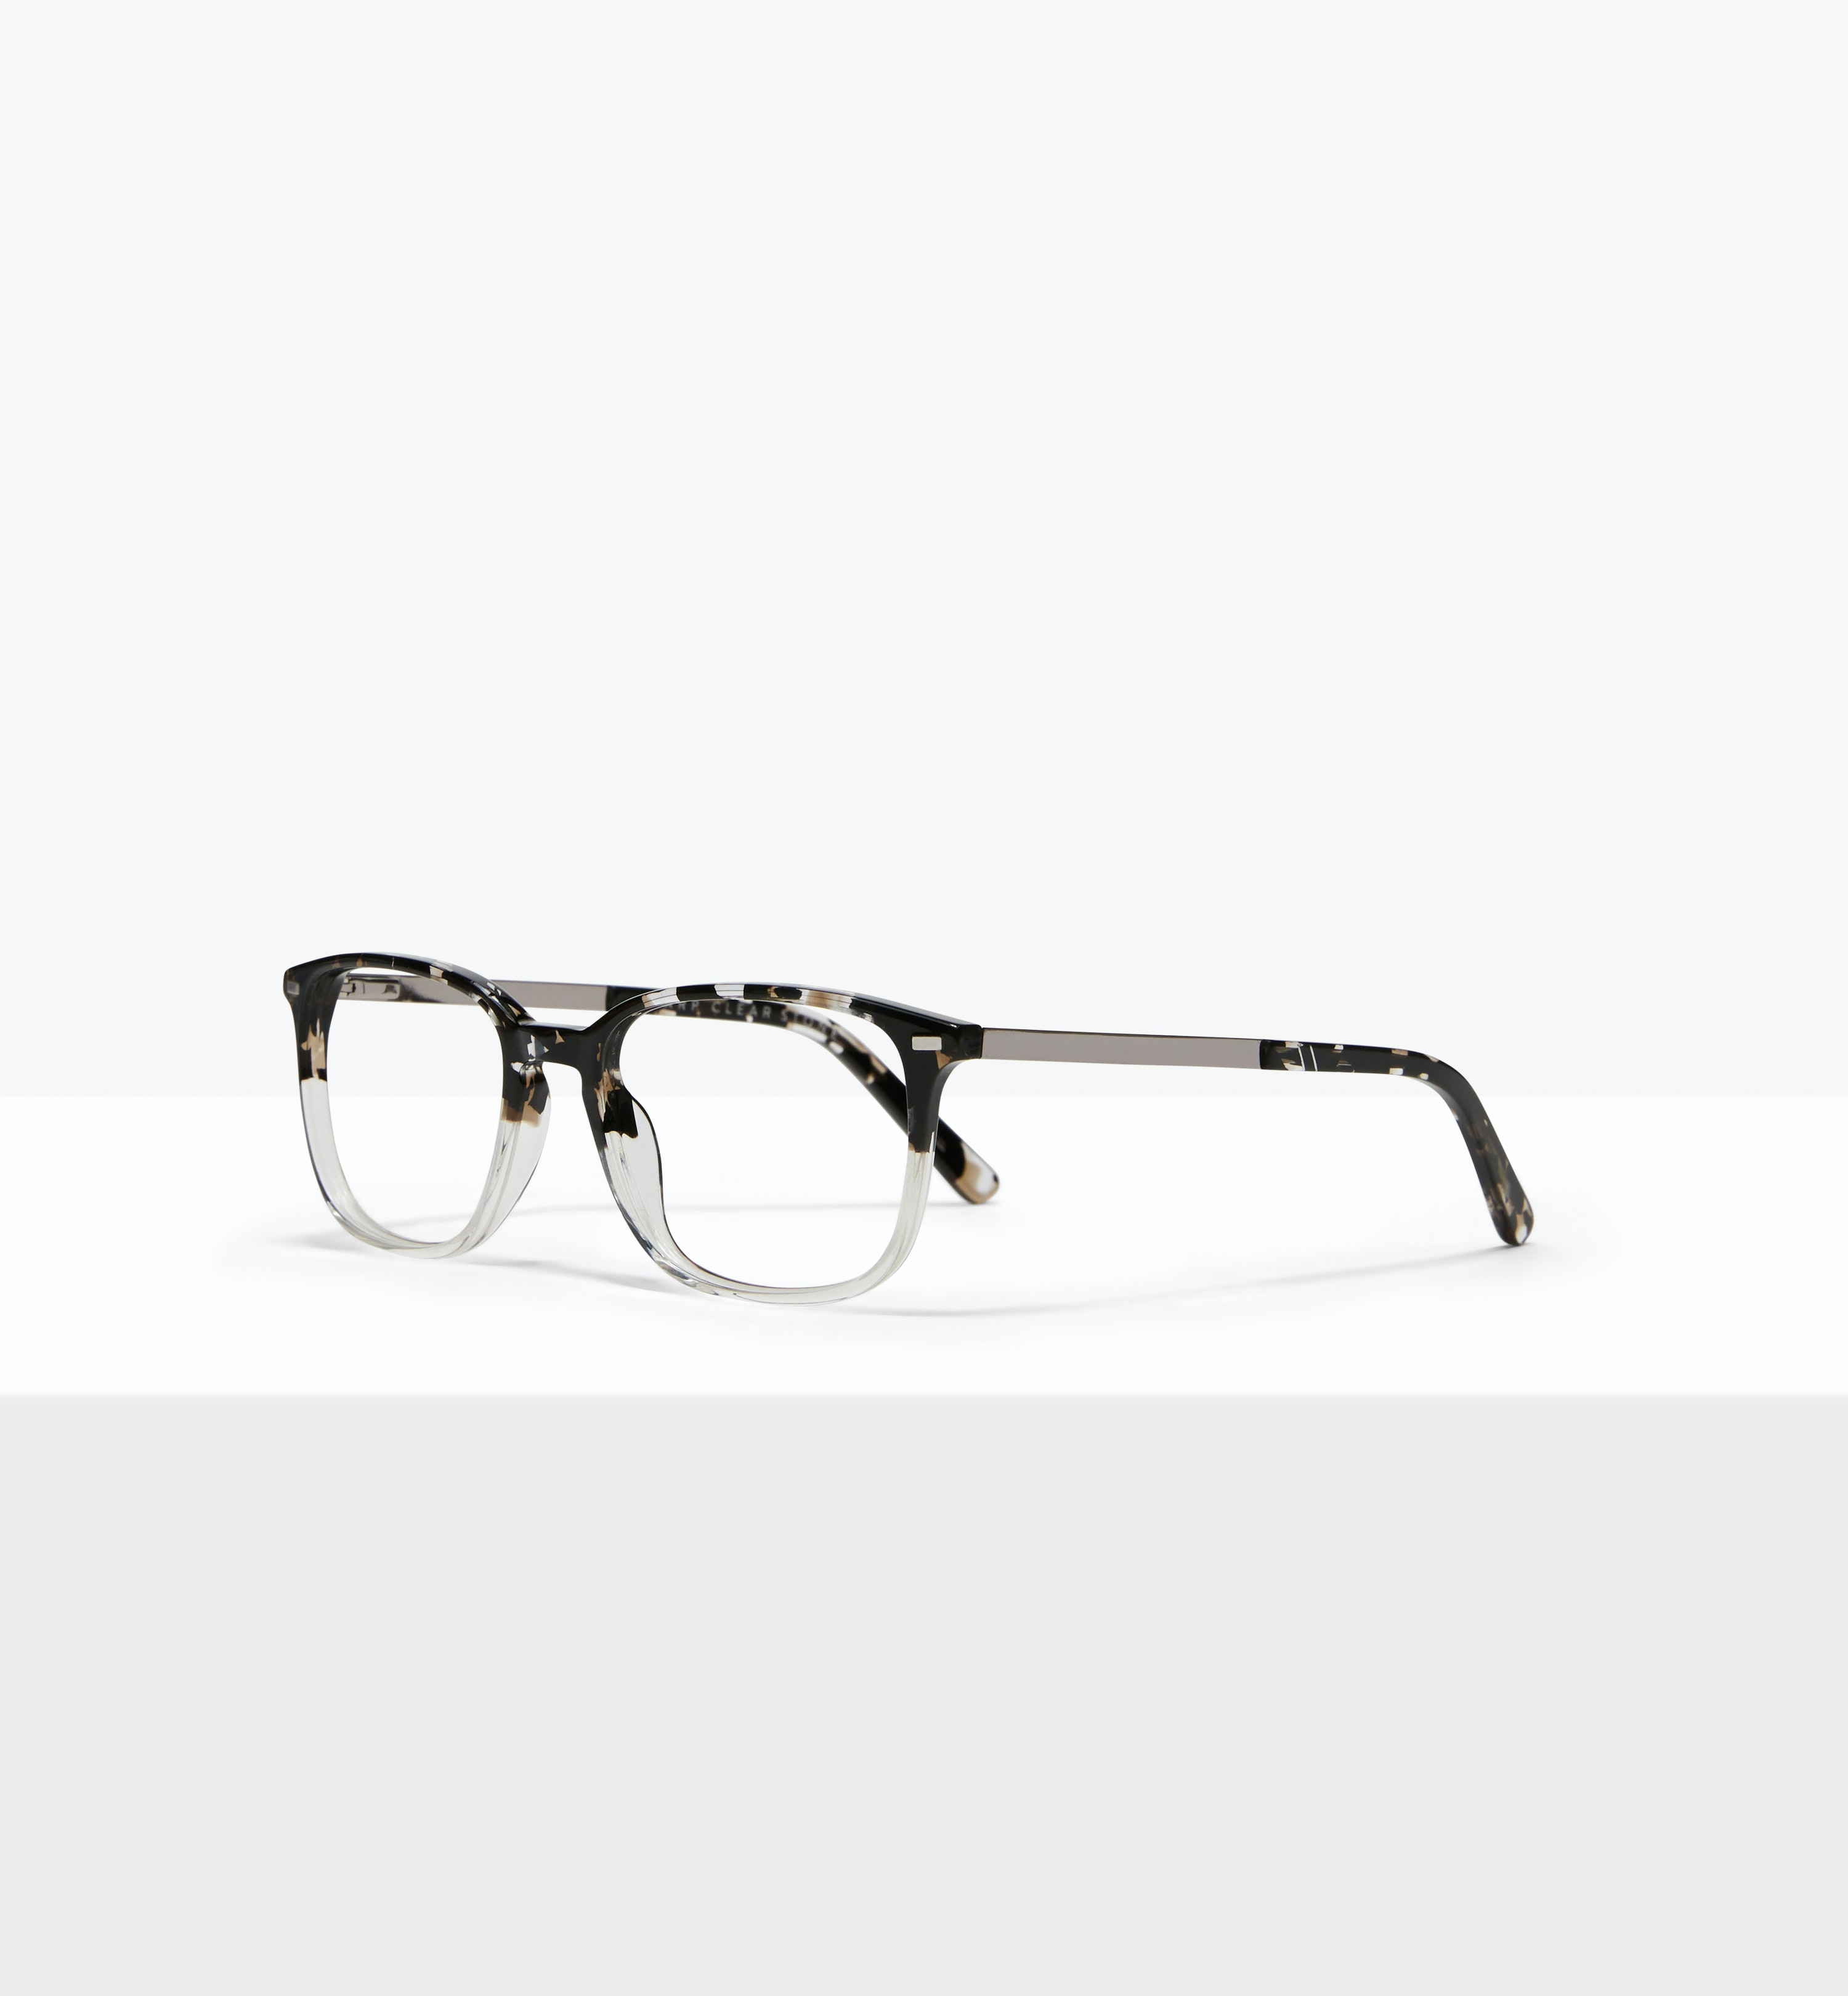 Affordable Fashion Glasses Rectangle Eyeglasses Men Sharp Clear Stone Tilt